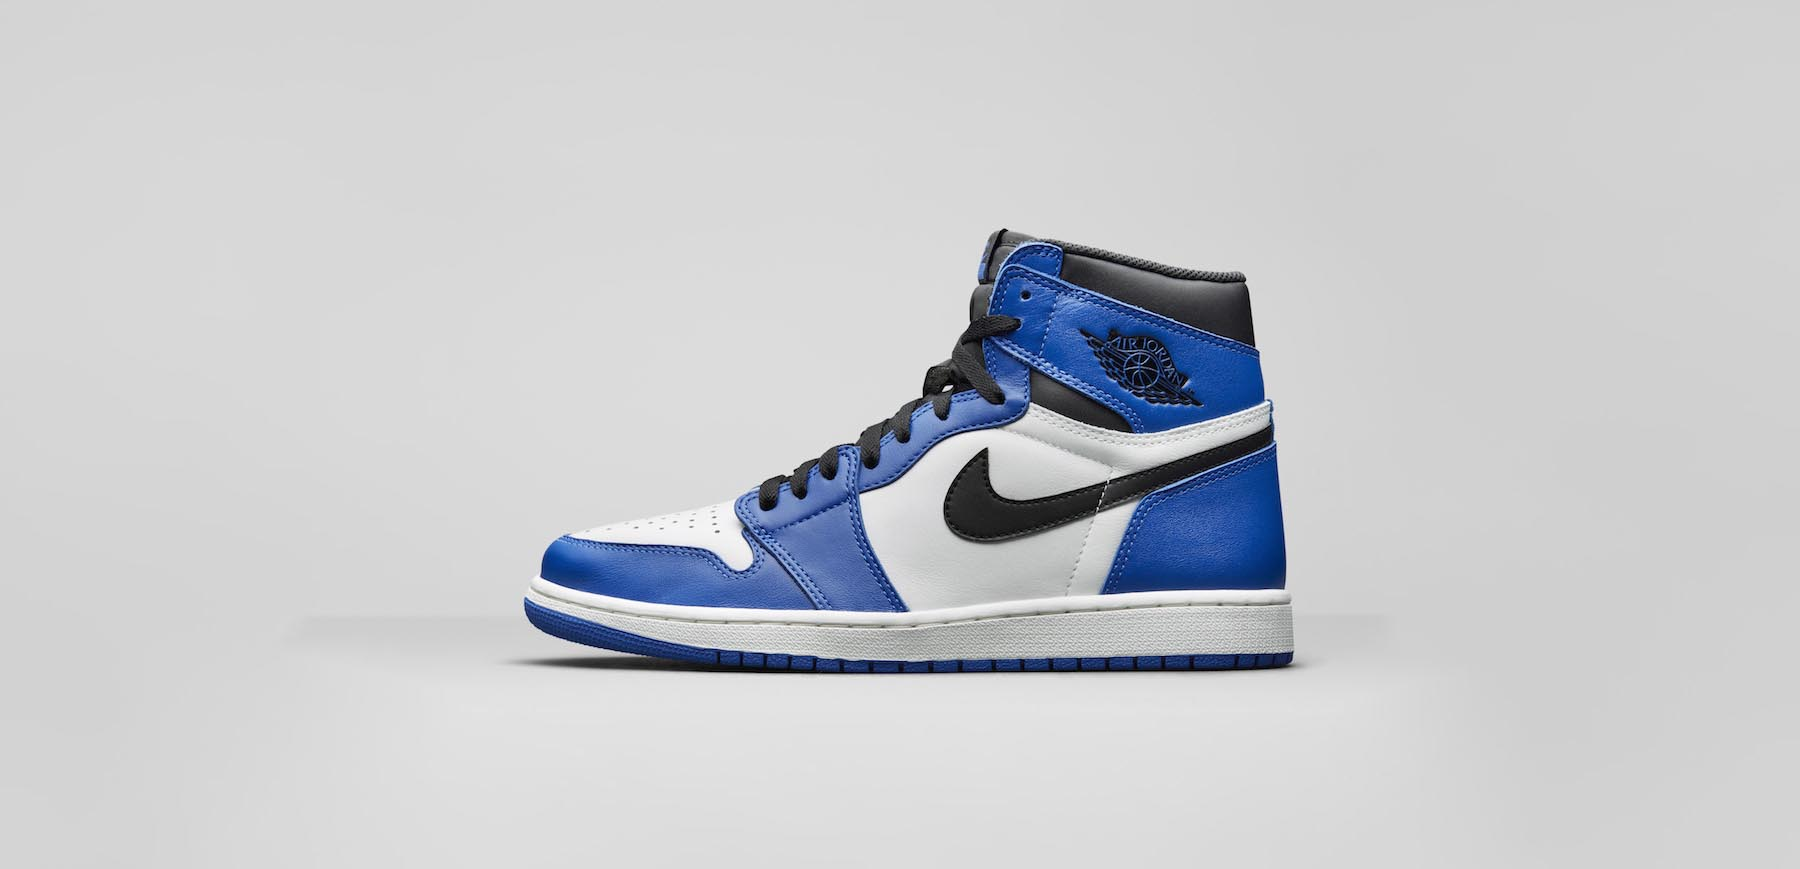 Jordan 1 Game Royal